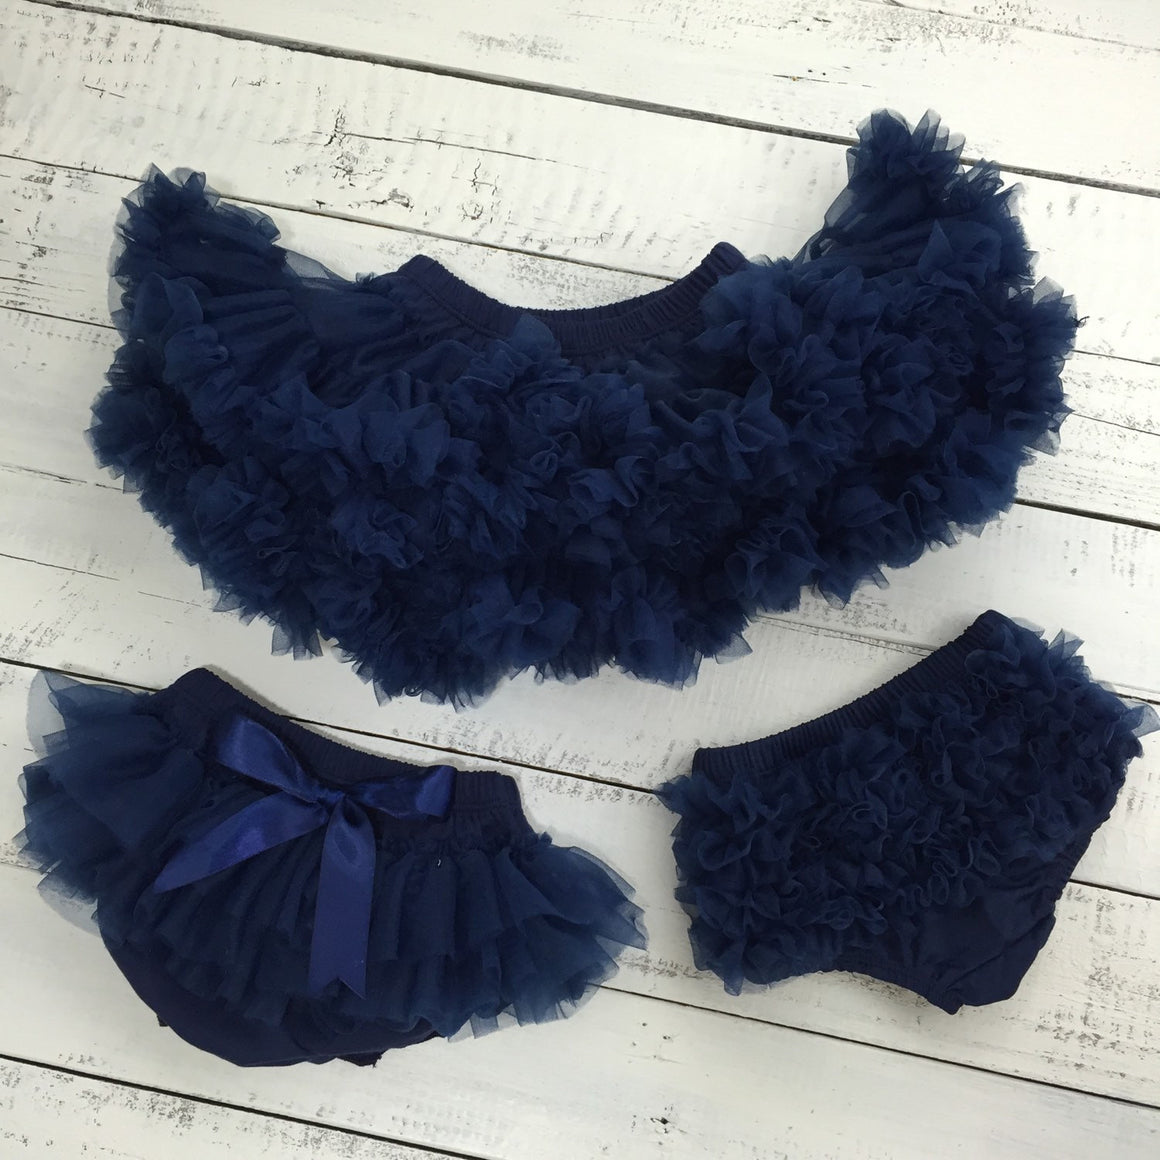 Snowman leg warmers, matching navy flower headband and ruffle bottom bloomers - HoneyLoveBoutique